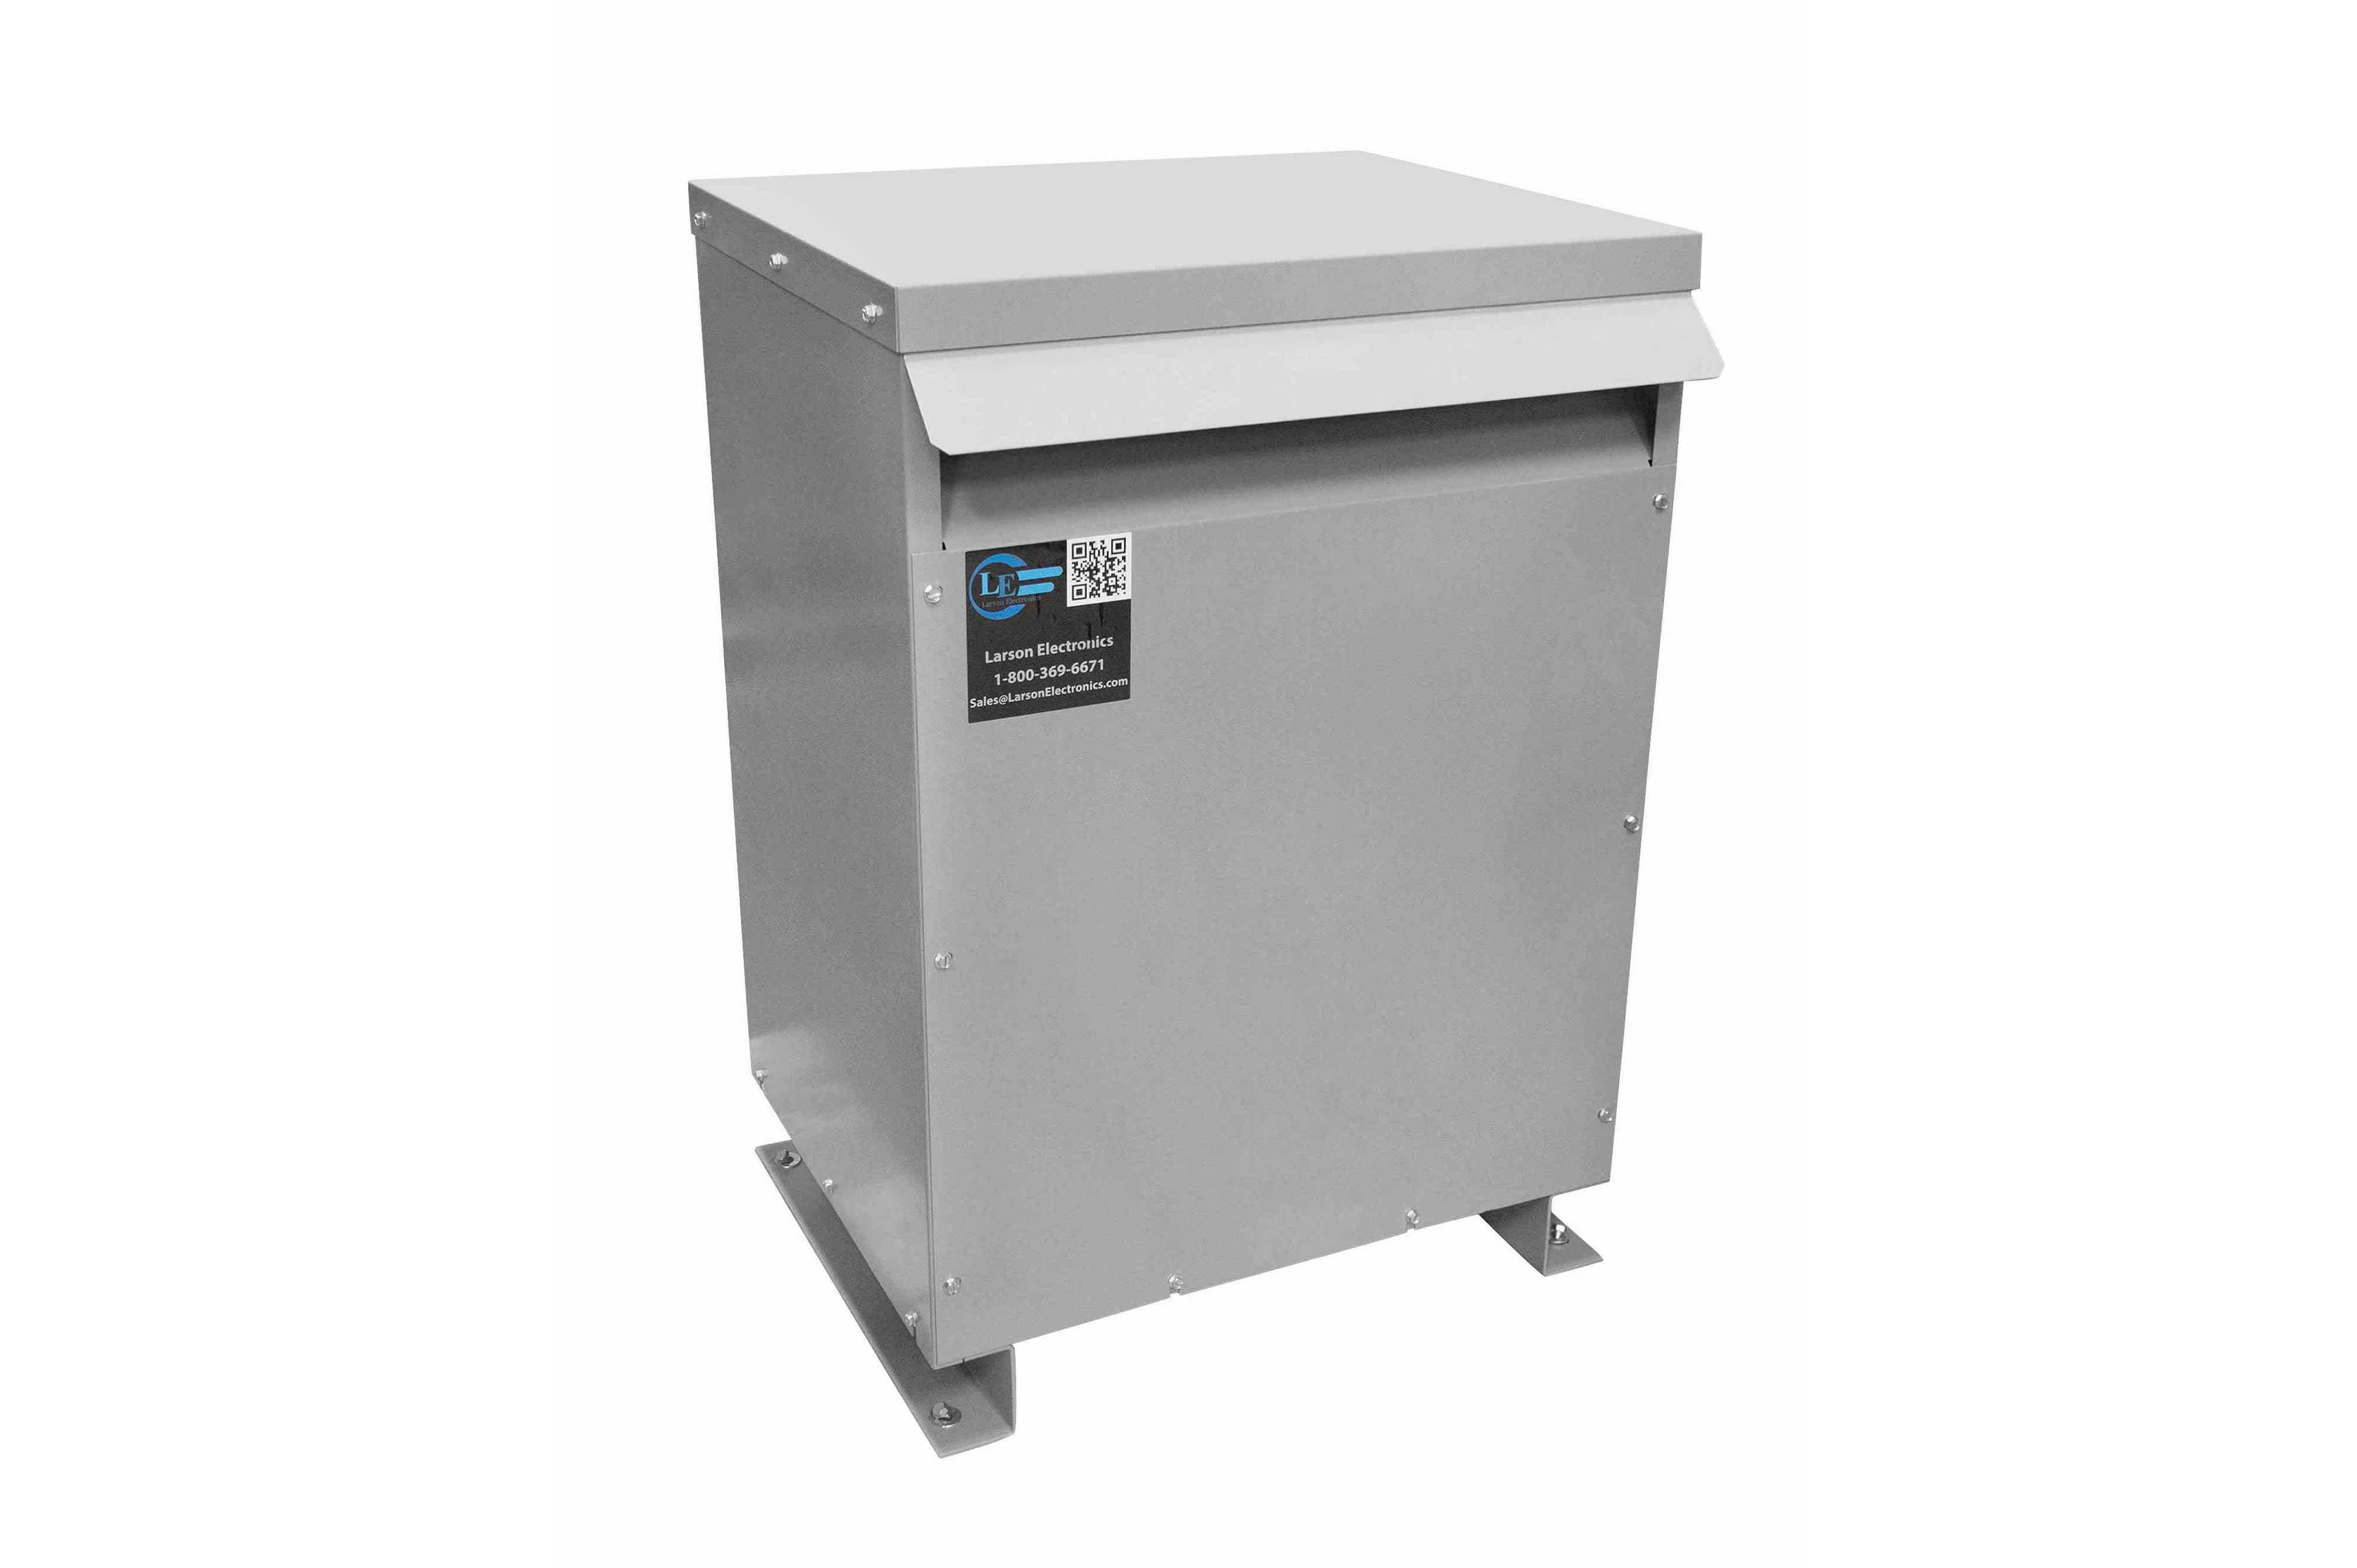 750 kVA 3PH Isolation Transformer, 208V Wye Primary, 240V/120 Delta Secondary, N3R, Ventilated, 60 Hz